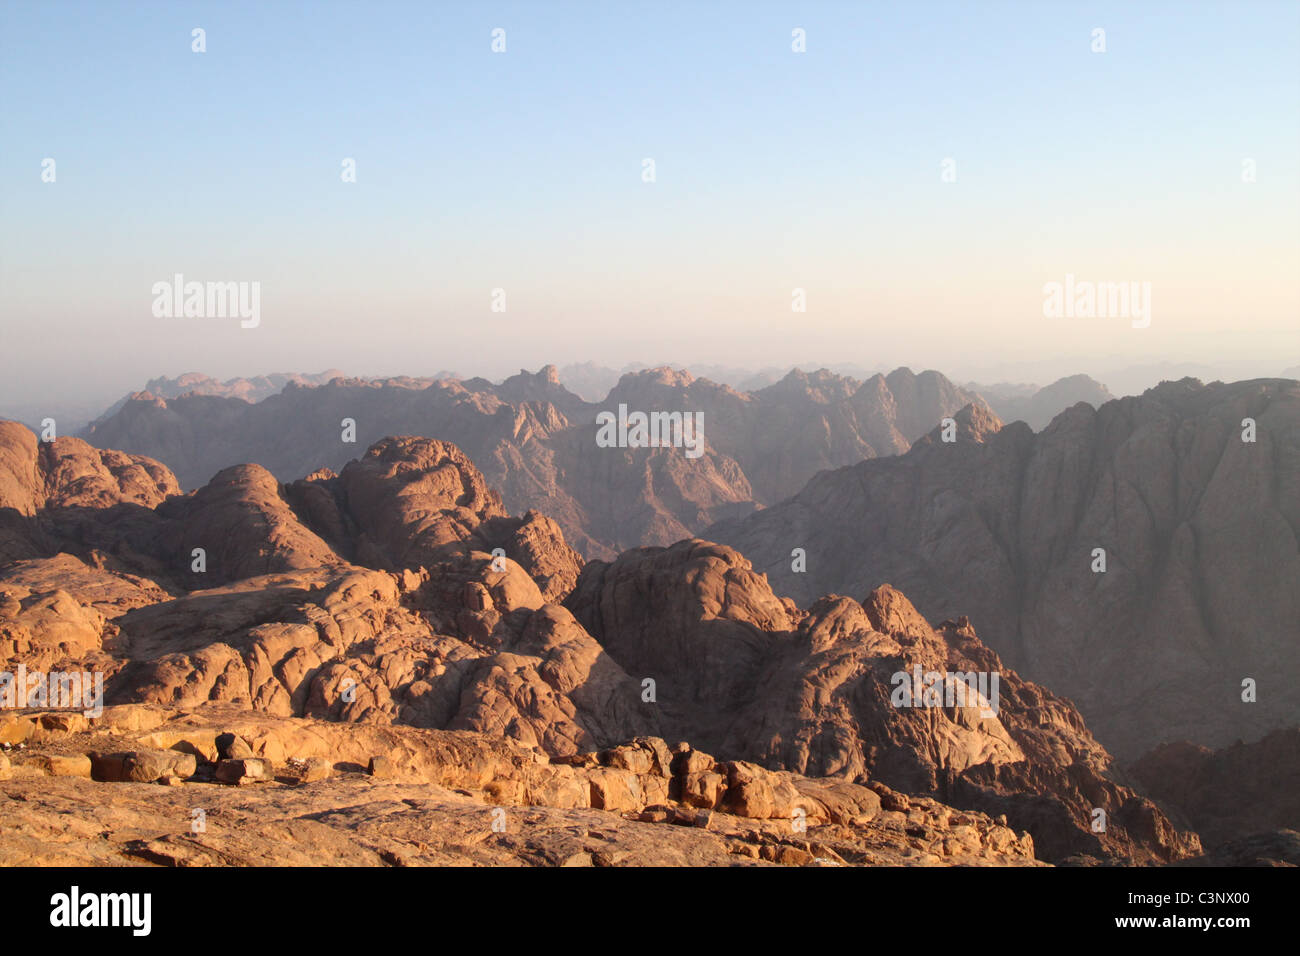 View from the summit of Mount Sinai (Jebel Musa), Egypt. - Stock Image